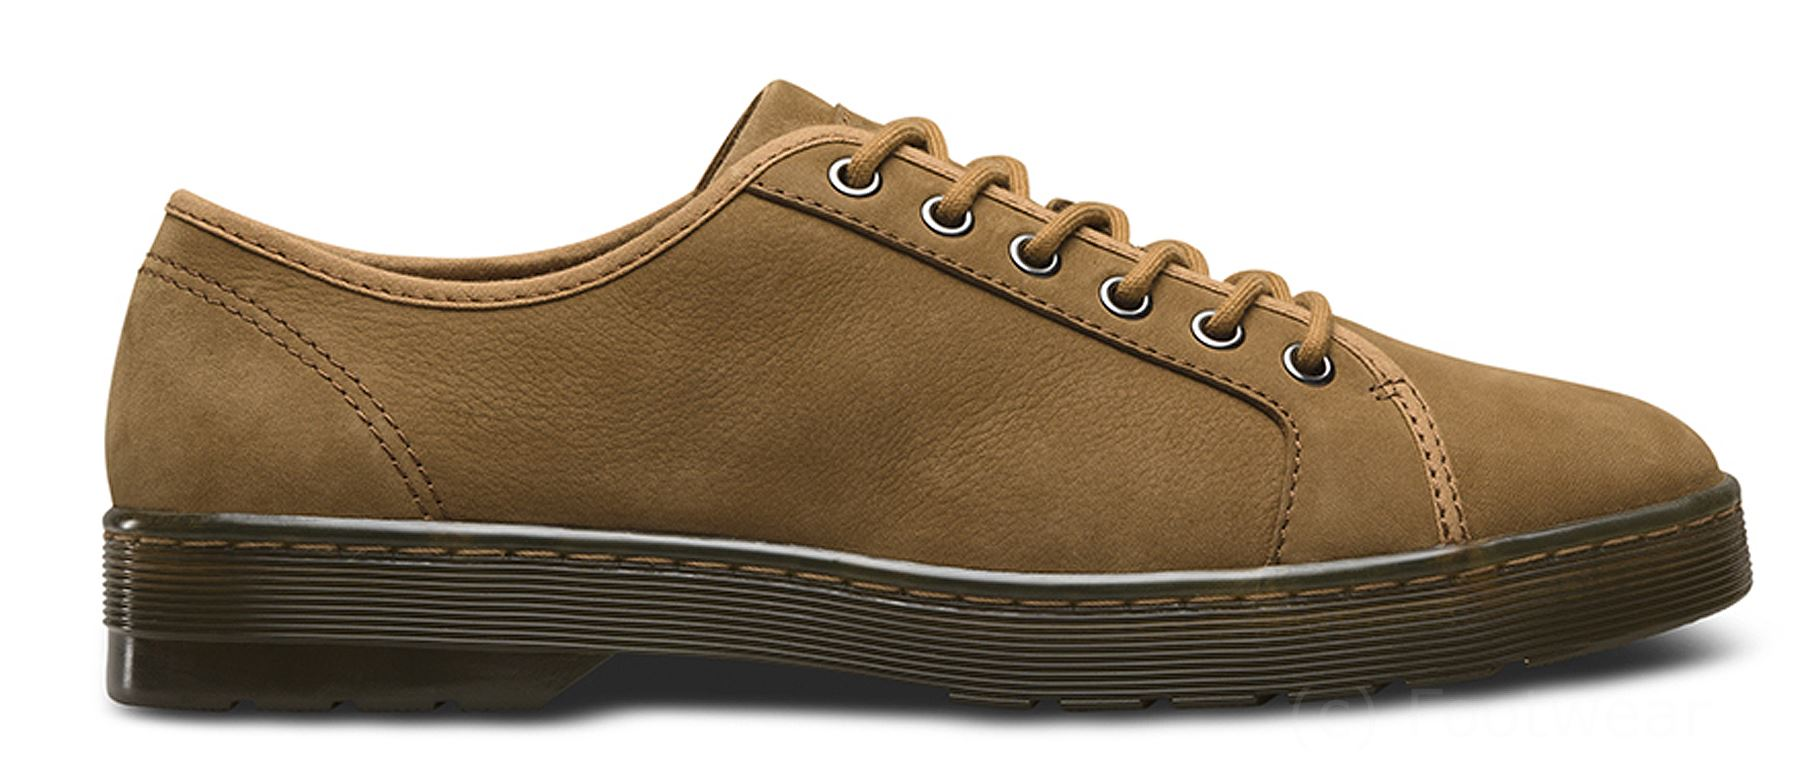 2a6df1de3563 ... Dr Martens Mens Mens Mens Wilbur II Slippery WP Nubuck Leather Low-top  Trainer Shoes ...